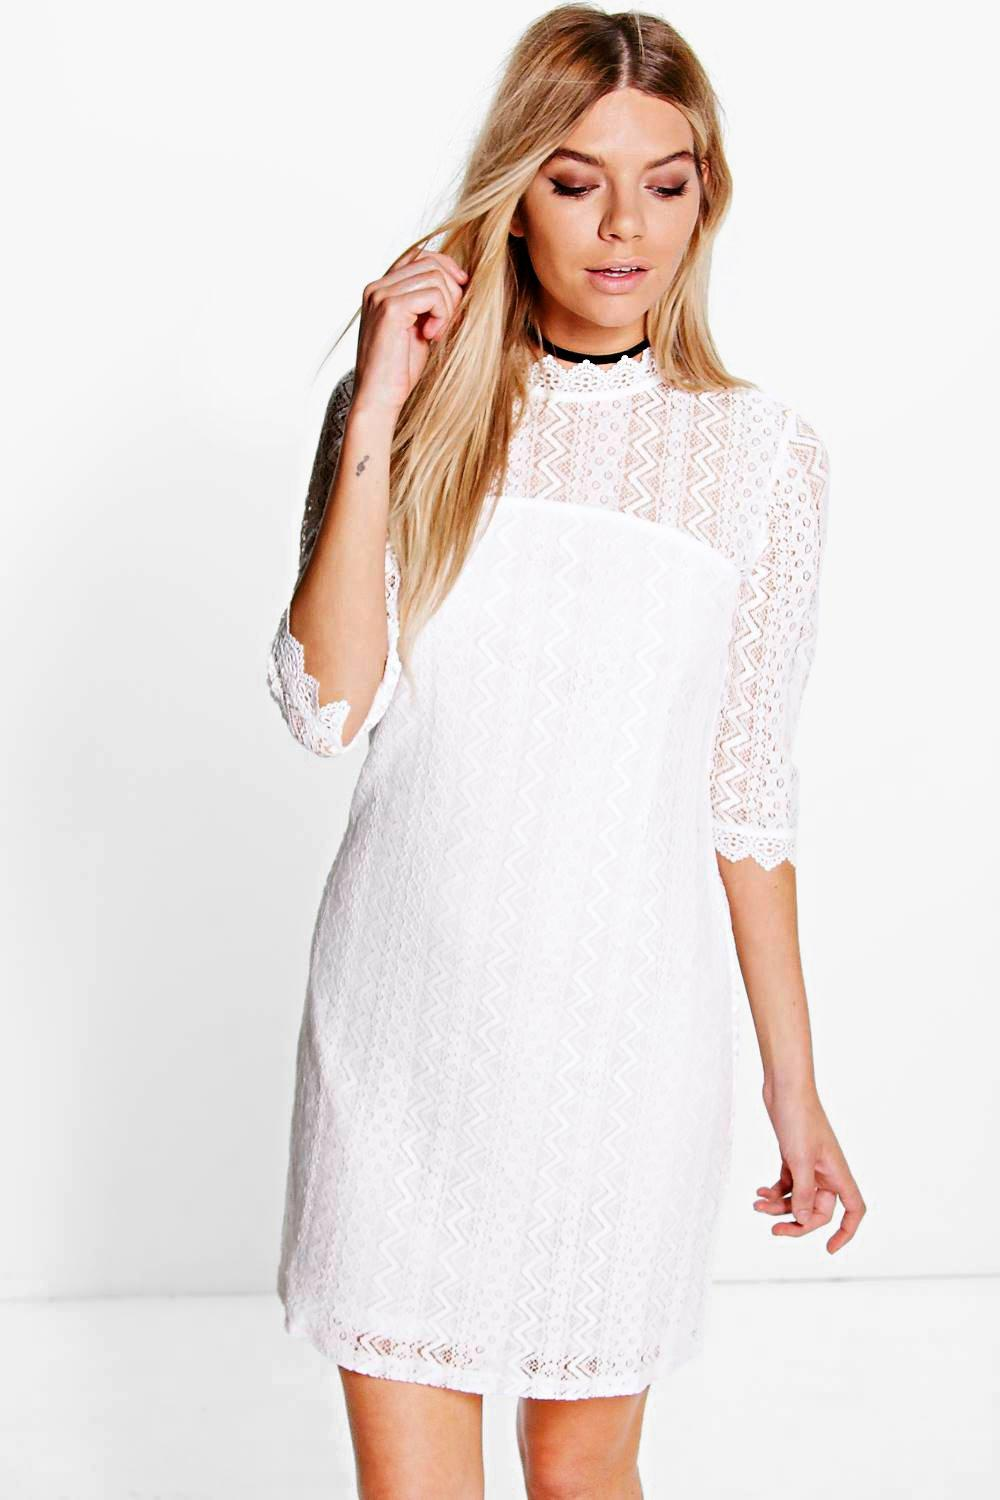 Titania Lace High Neck Shift Dress